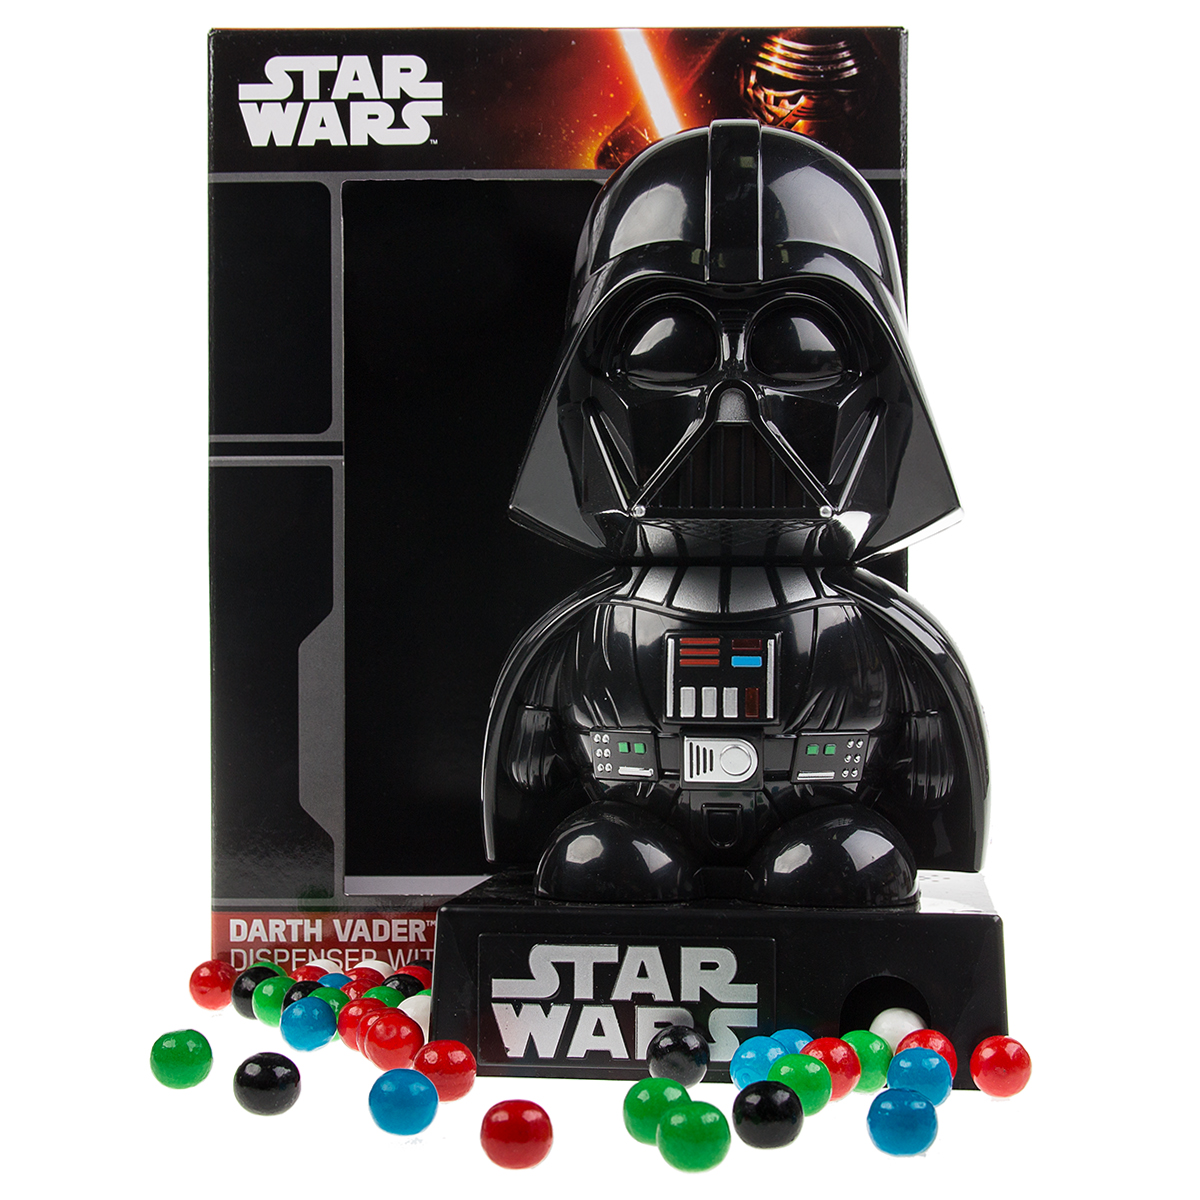 Darth Vader Mini Gumball Machine Candy Dispenser Star Wars Toy Lights & Sounds